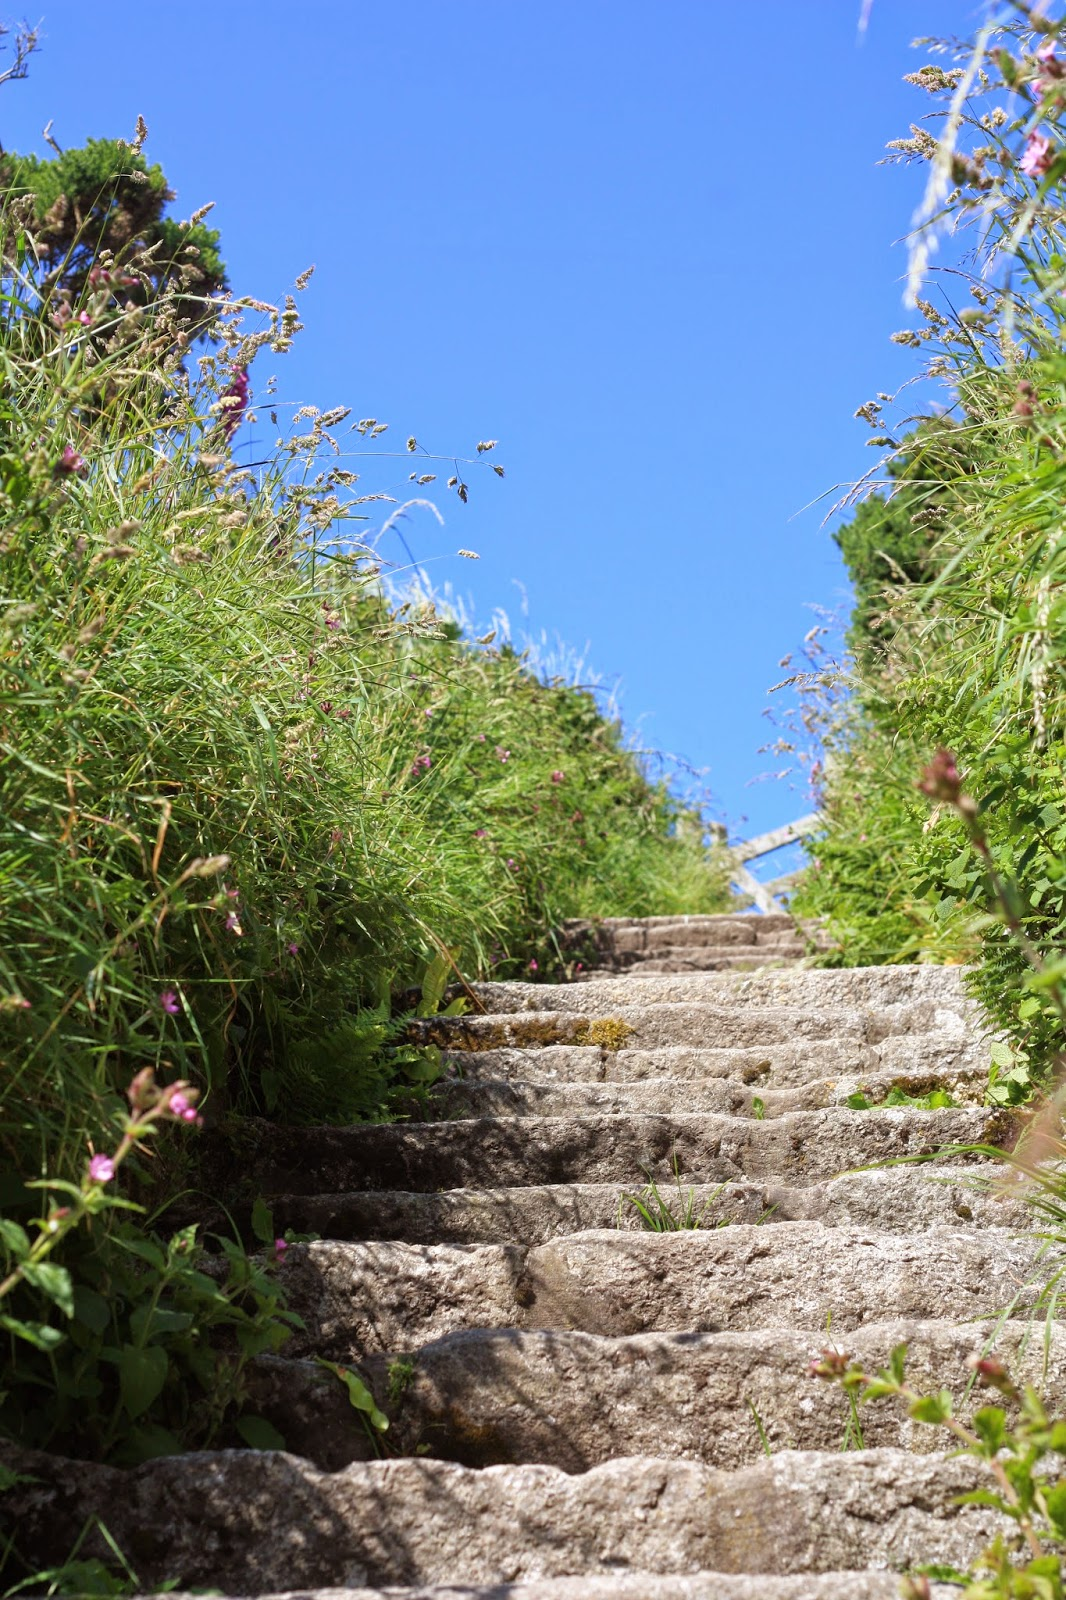 Stone steps surrounded by wild plants under a deep blue sky